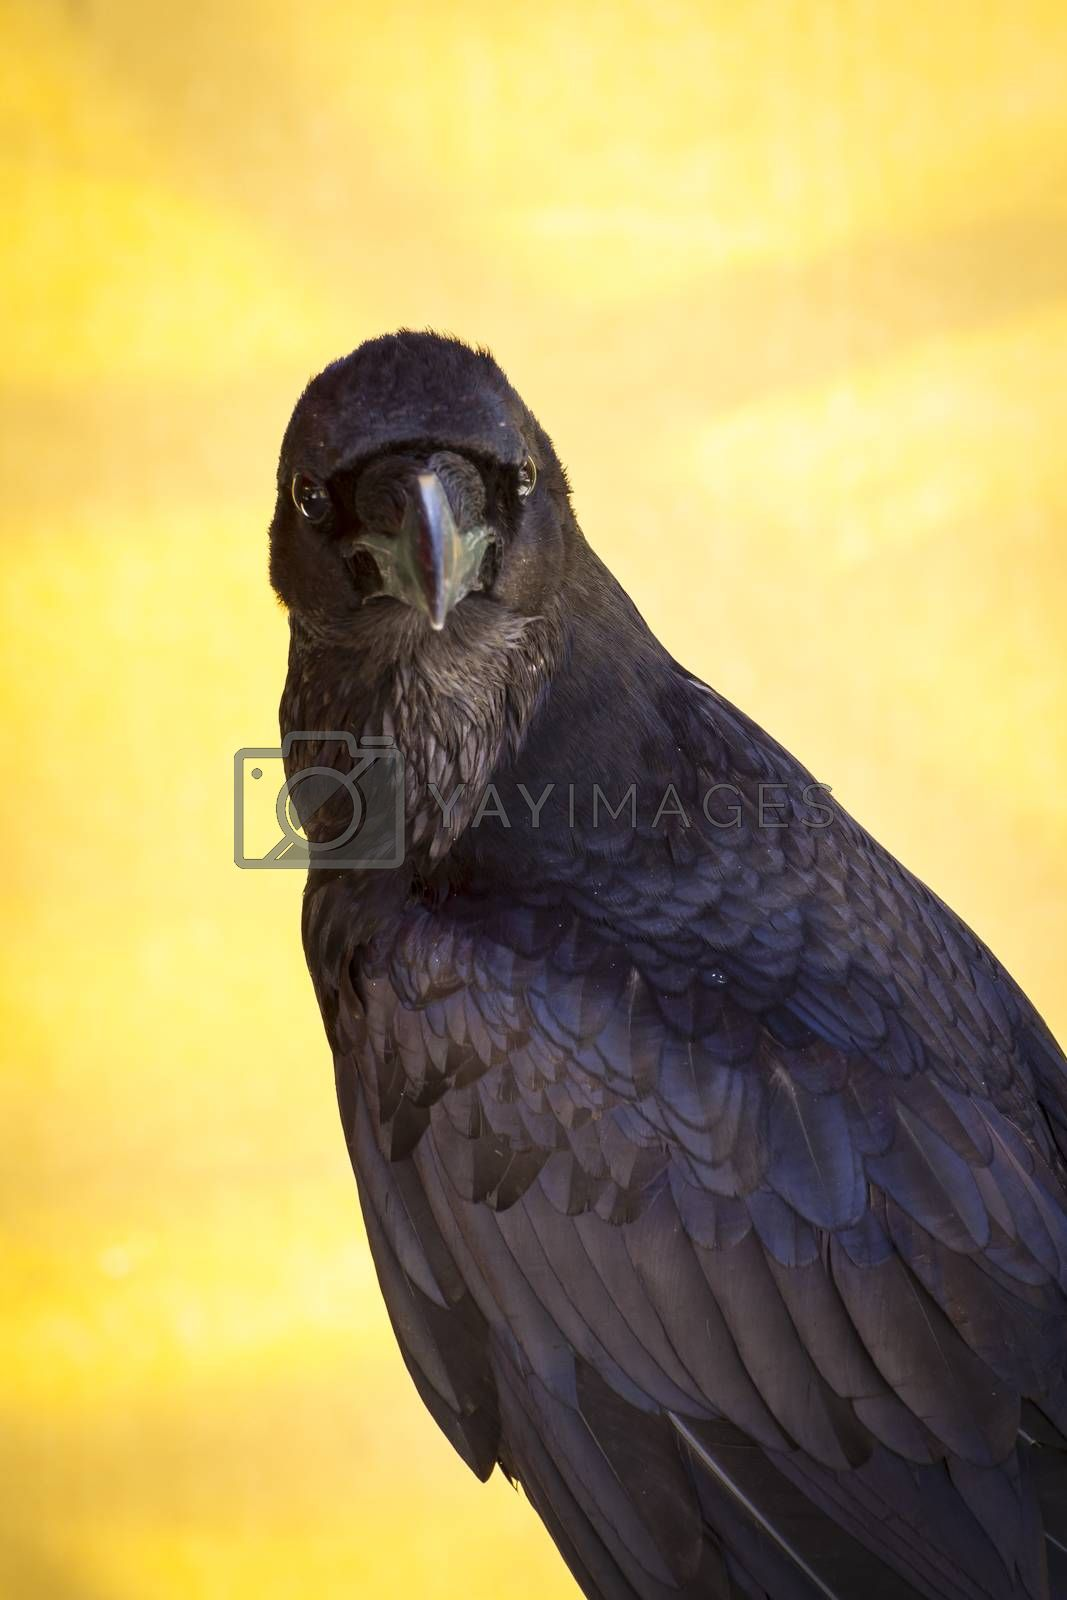 Corvus, black crow in a sample of birds of prey, medieval fair